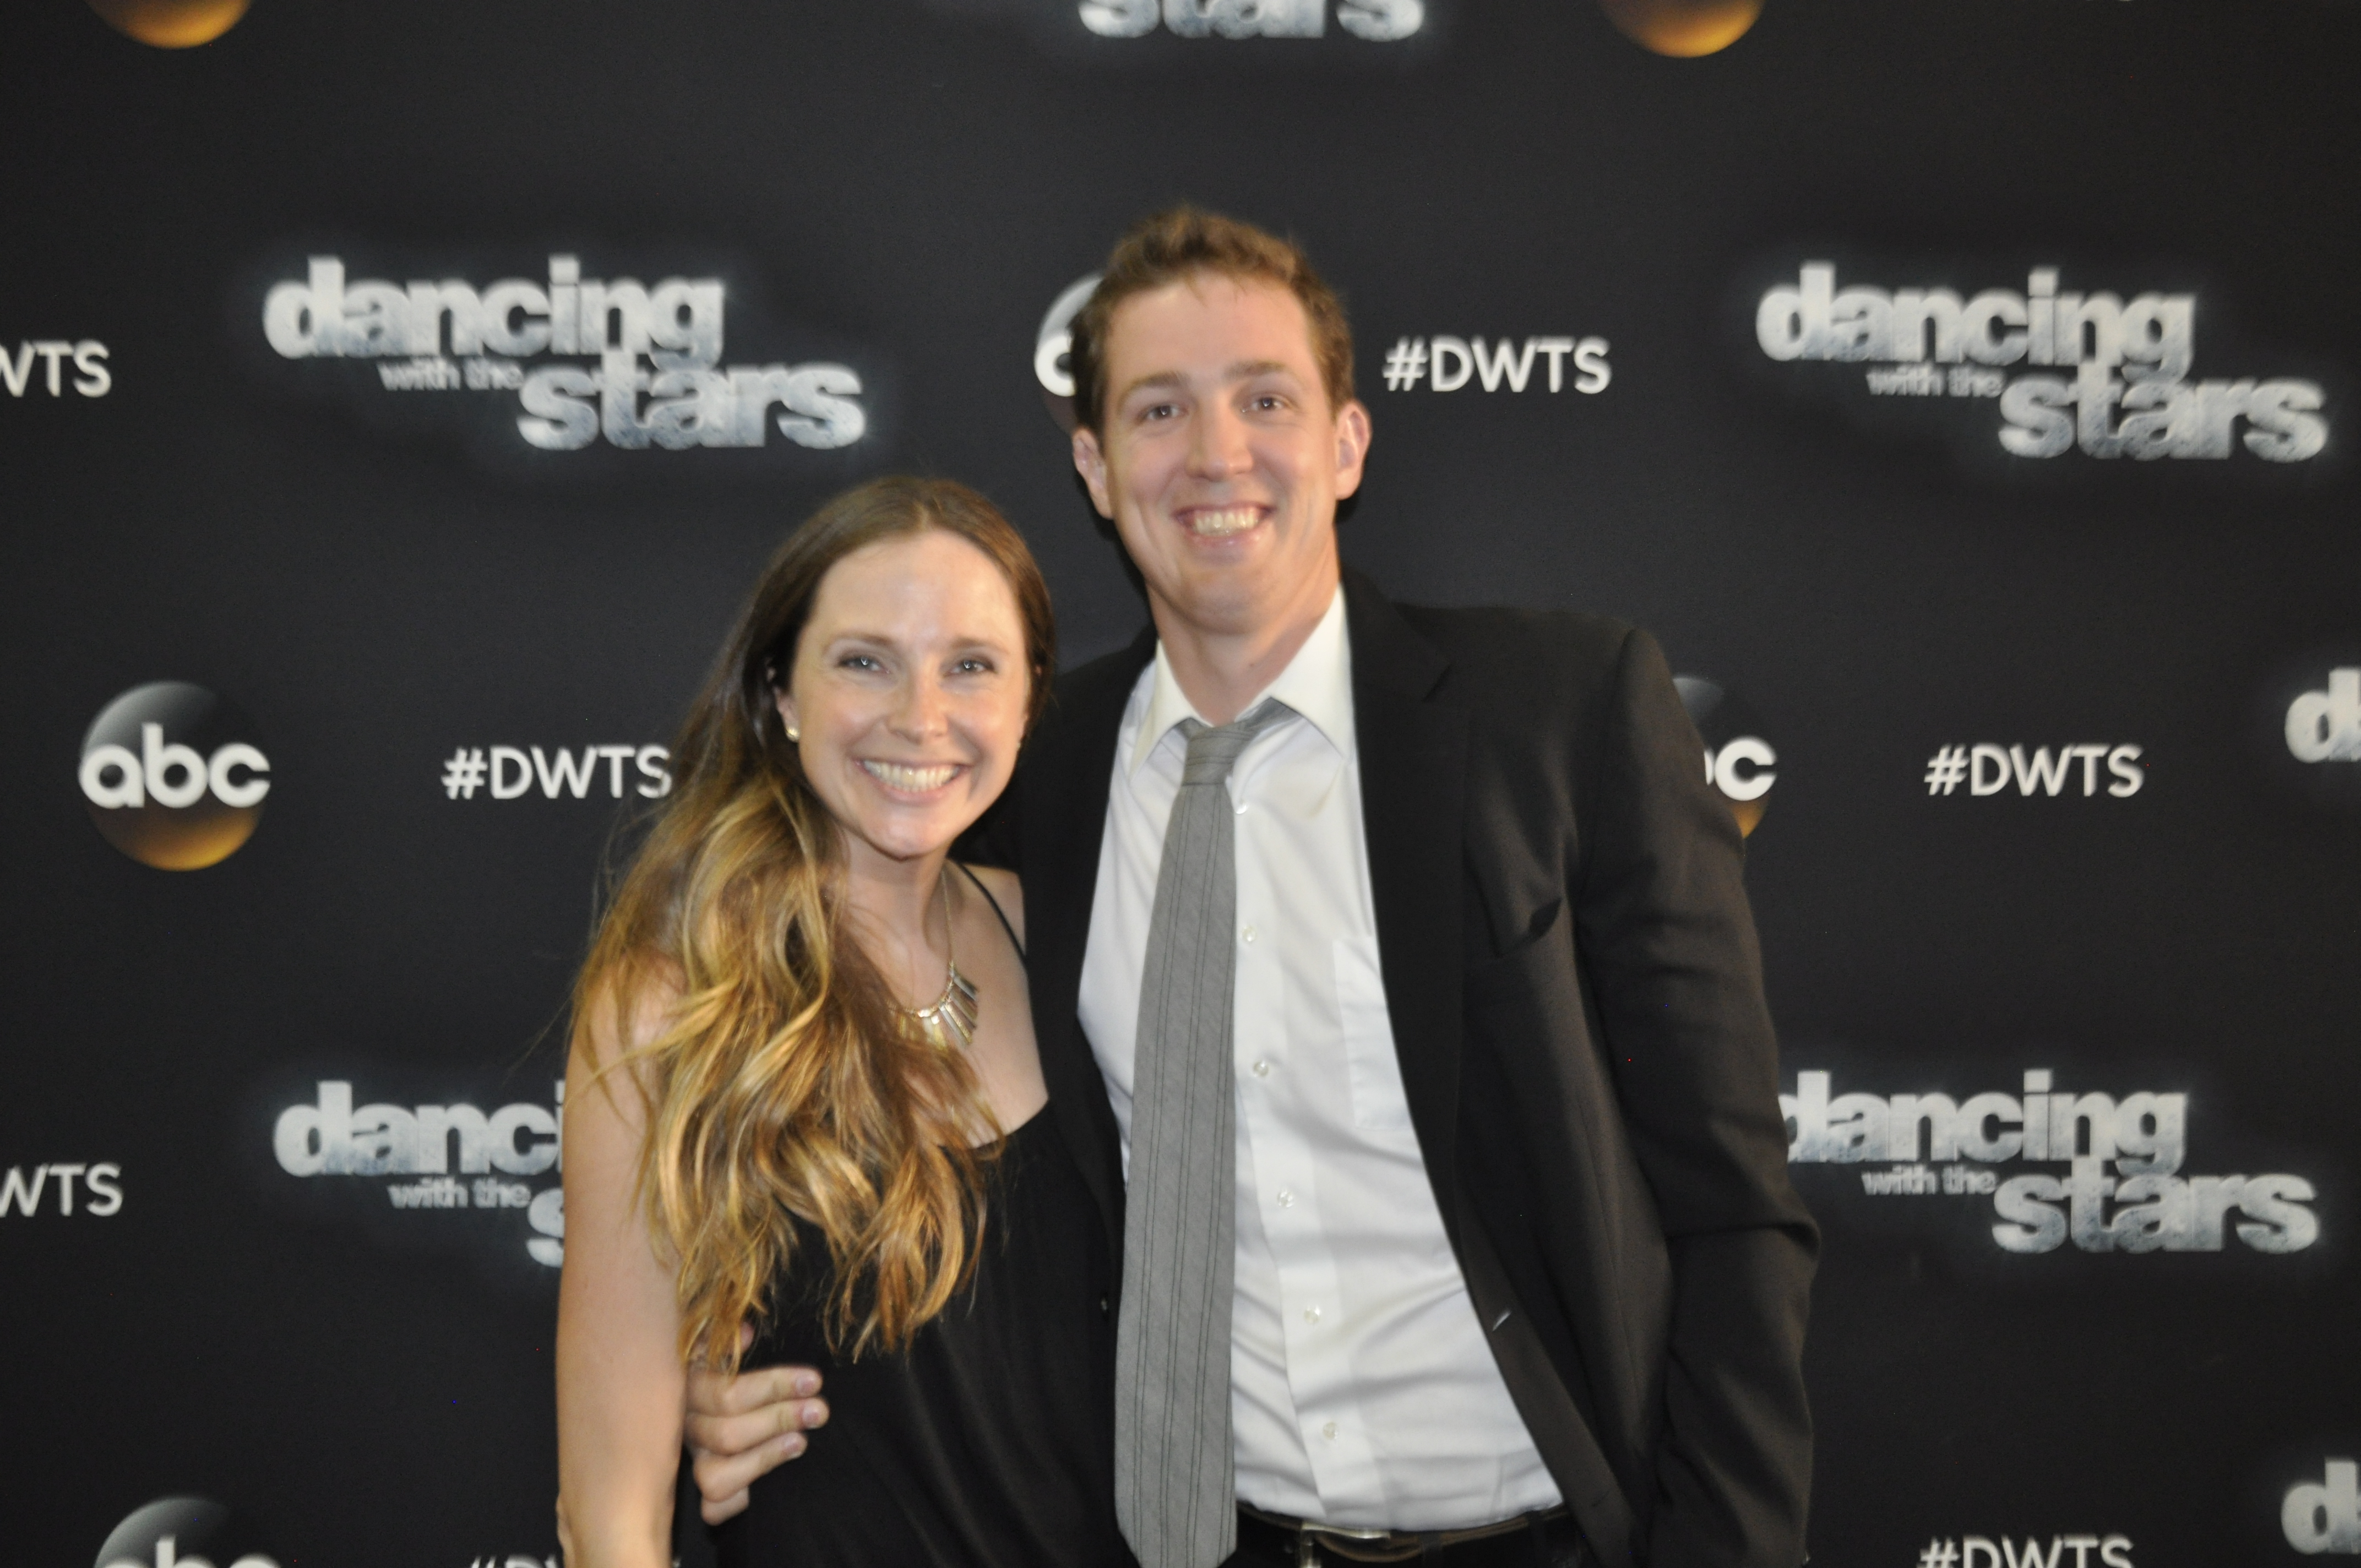 Dancing with the Stars - Emily & Miles Taylor